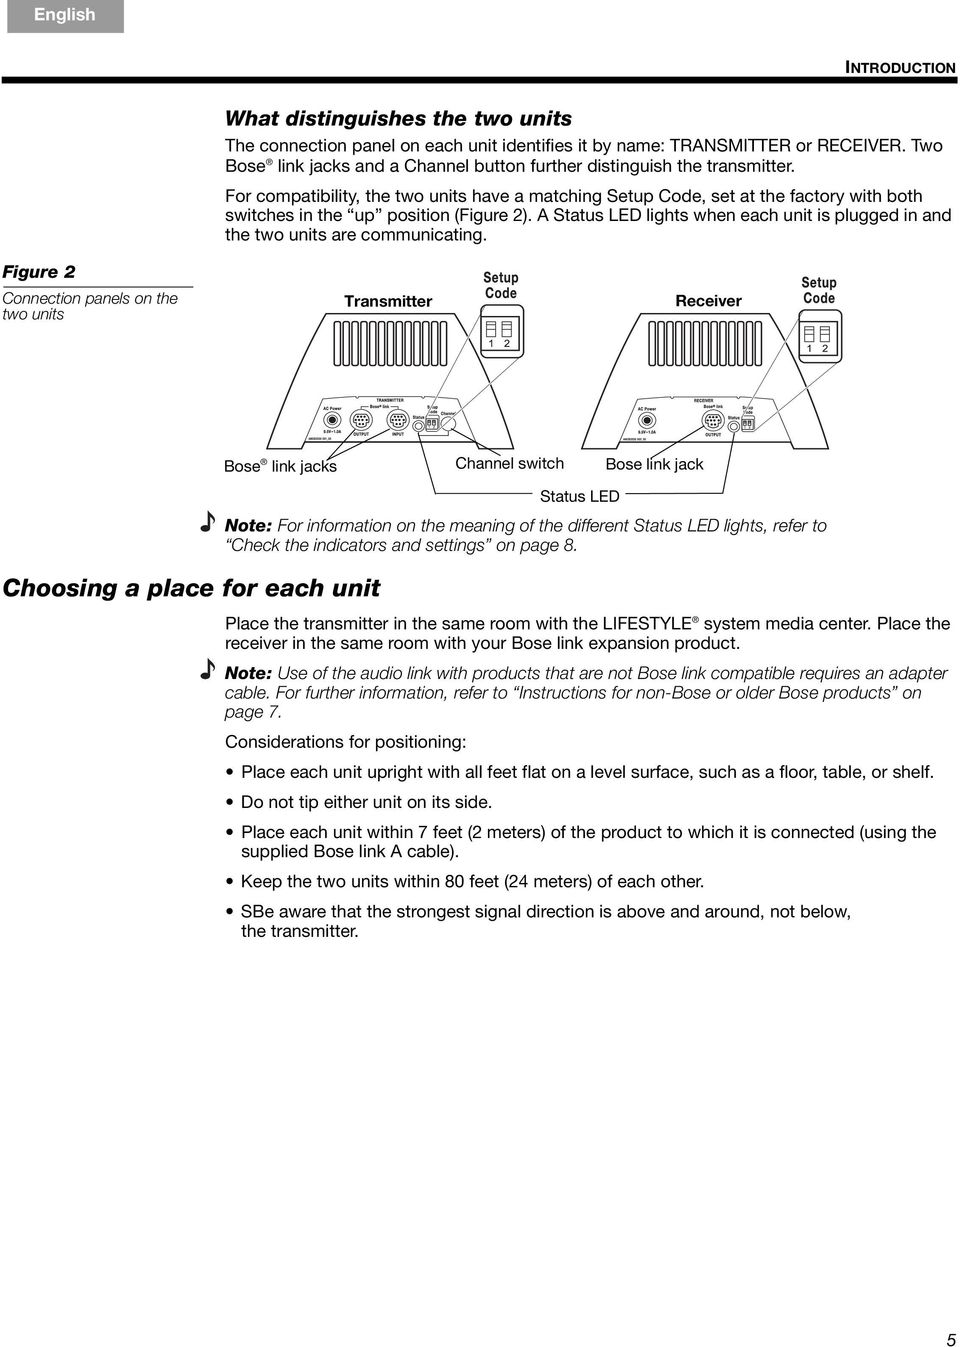 Bose Link Al8 Homewide Wireless Audio Pdf Lifestyle 235 Home Theater Wiring Diagram For Compatibility The Two Units Have A Matching Setup Code Set At Factory